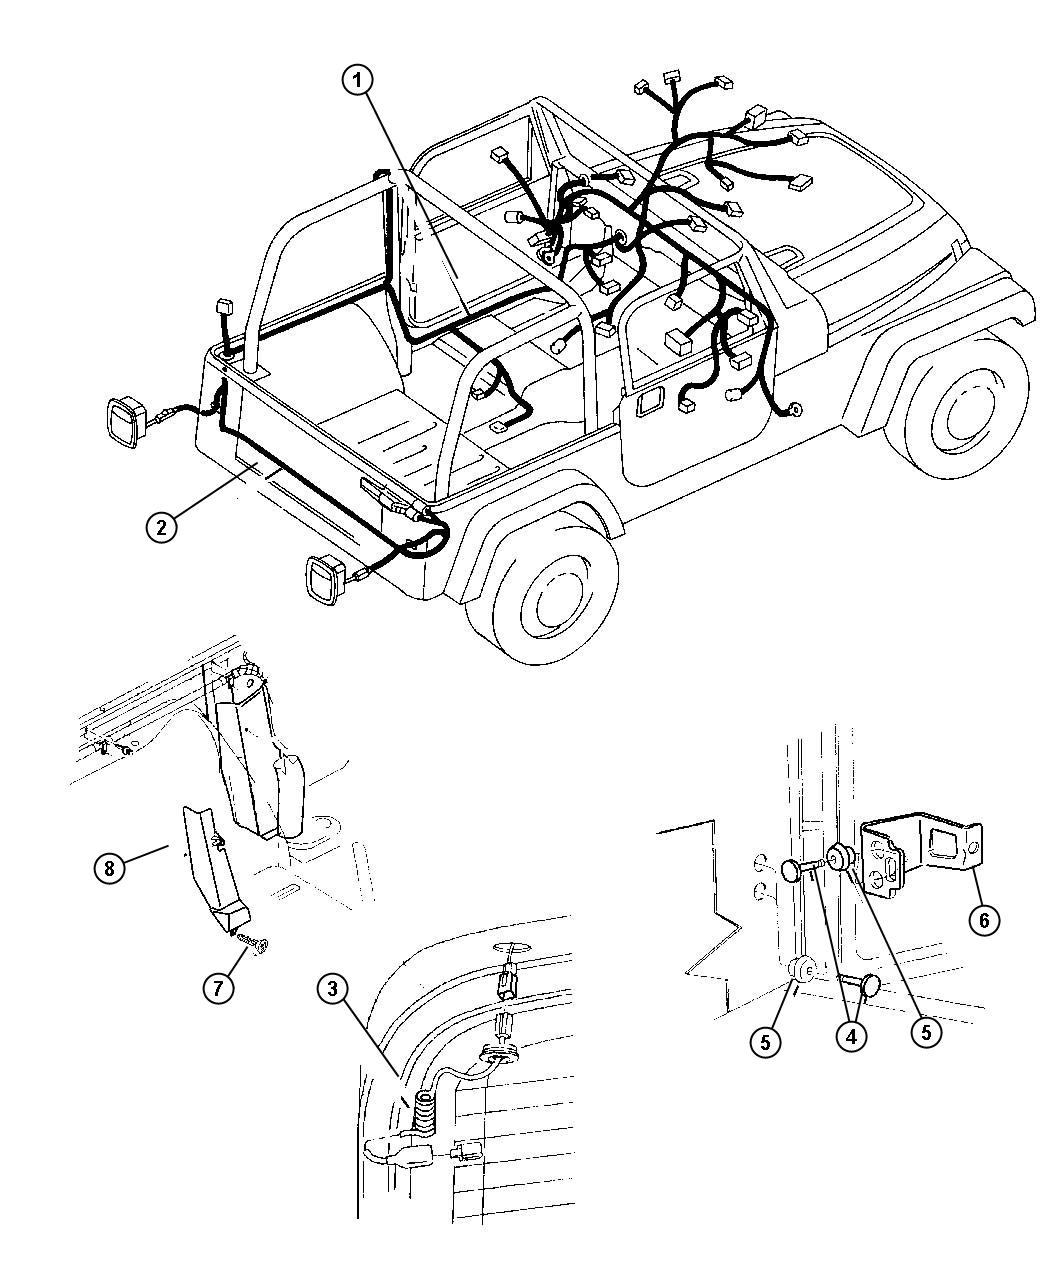 tags: #1992 jeep wrangler wiring diagram#99 jeep wrangler wiring diagram#jeep  wrangler parts and wiring diagrams#1990 jeep wrangler wiring diagram#2004  jeep